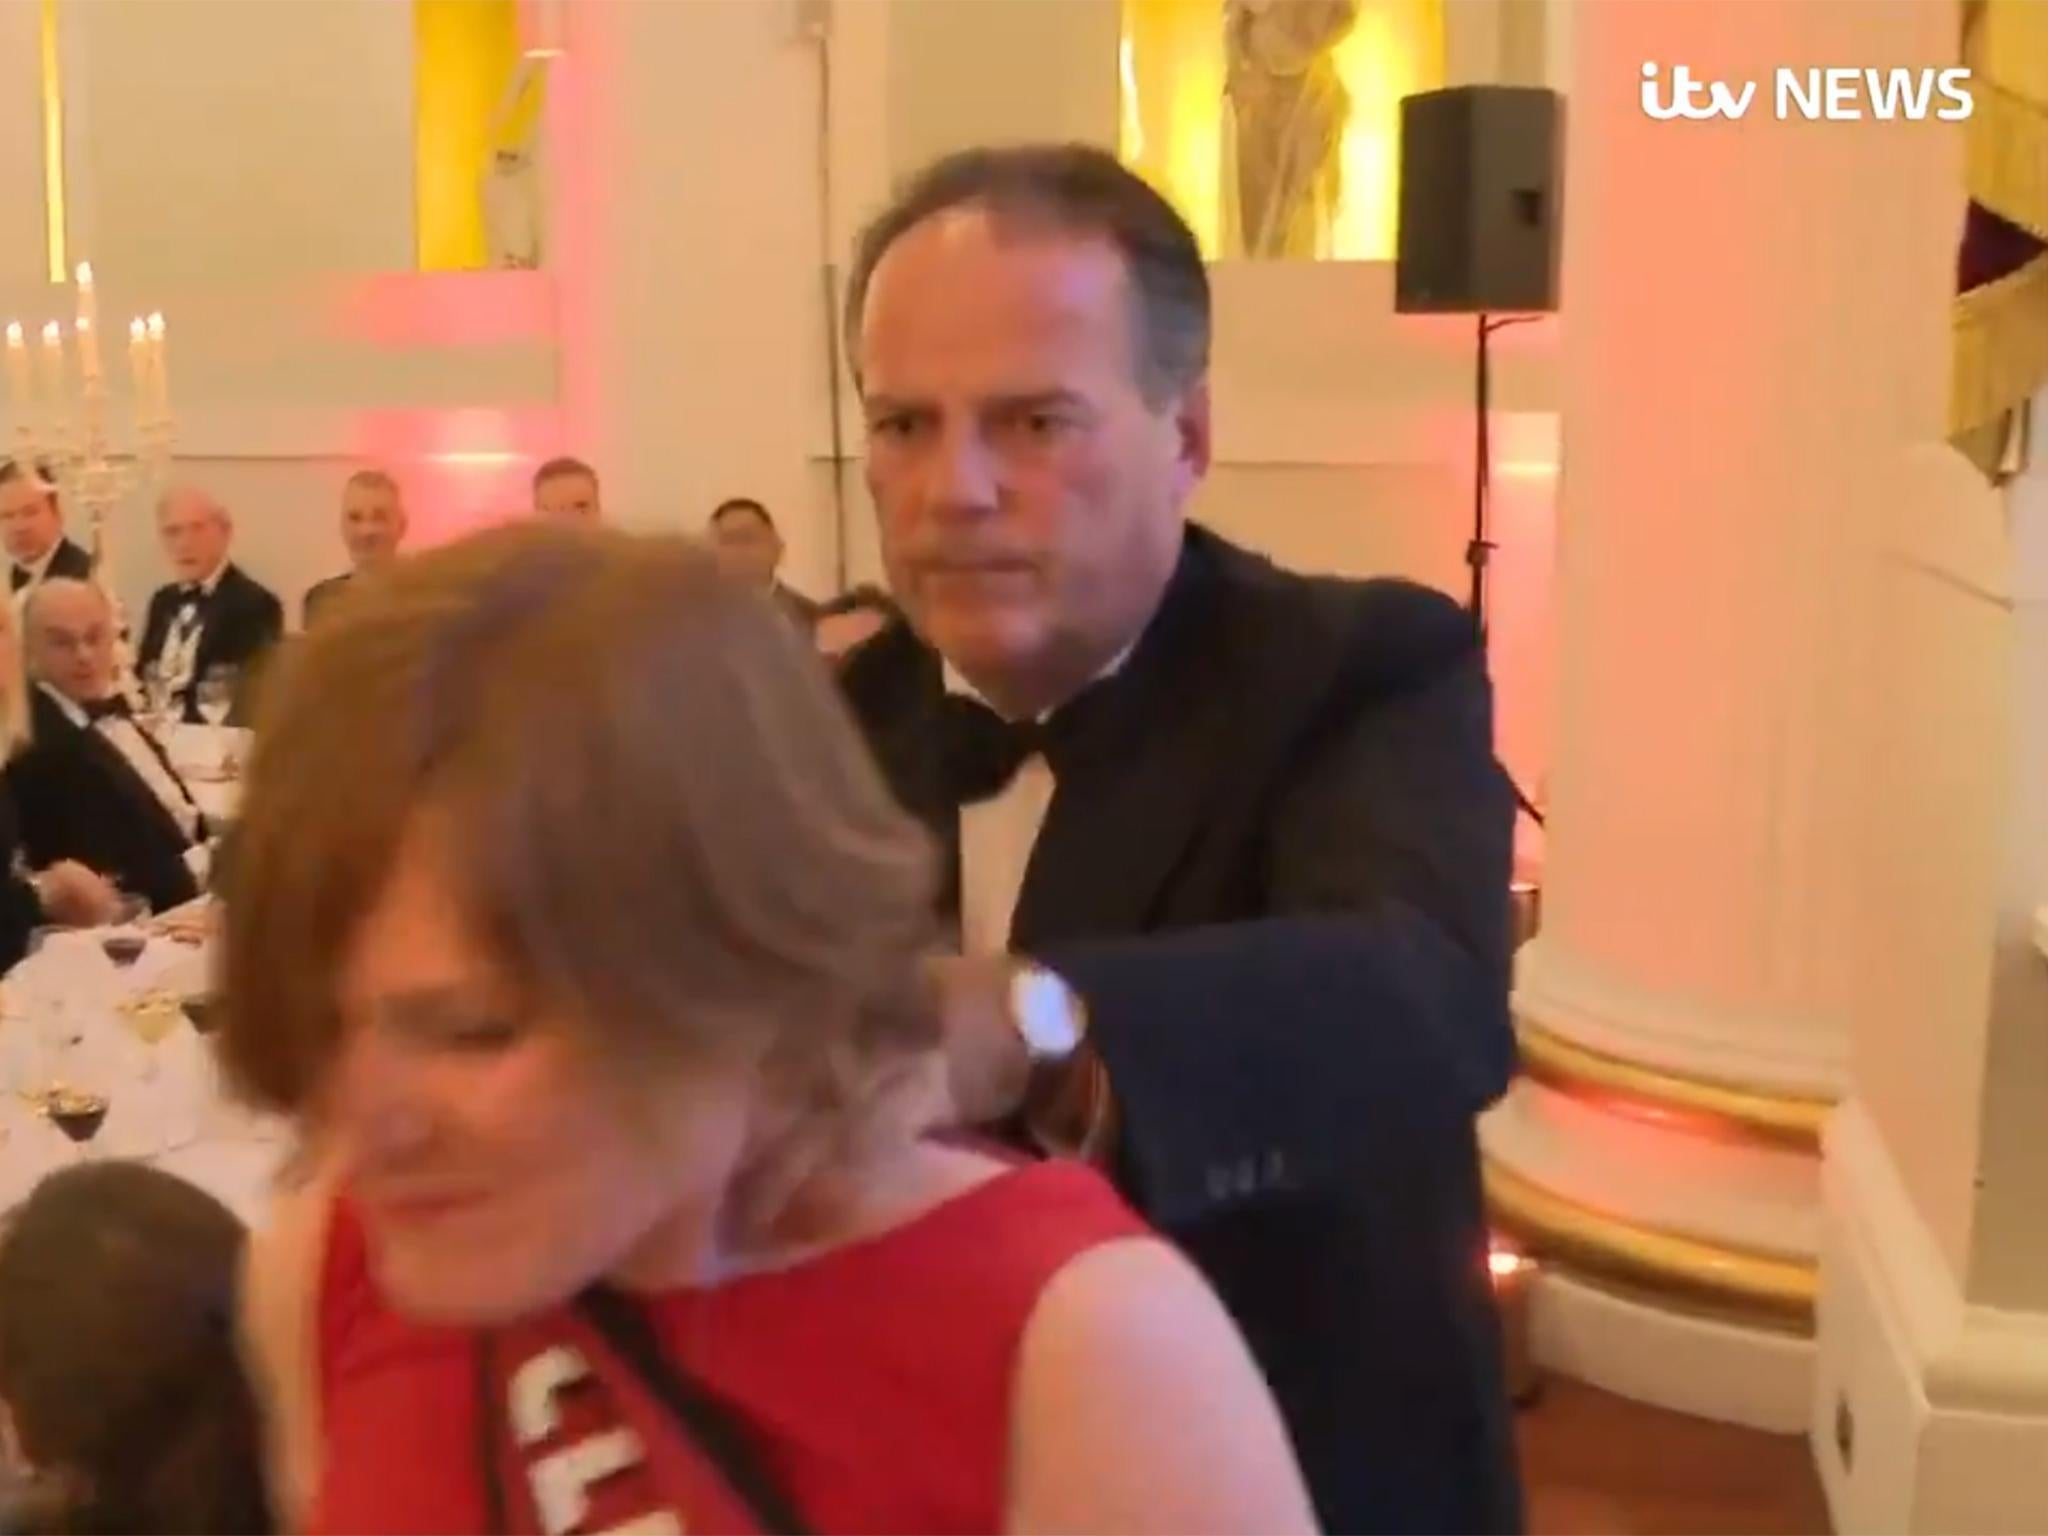 Mark Field suspended: Tory minister loses job after grabbing female climate protester